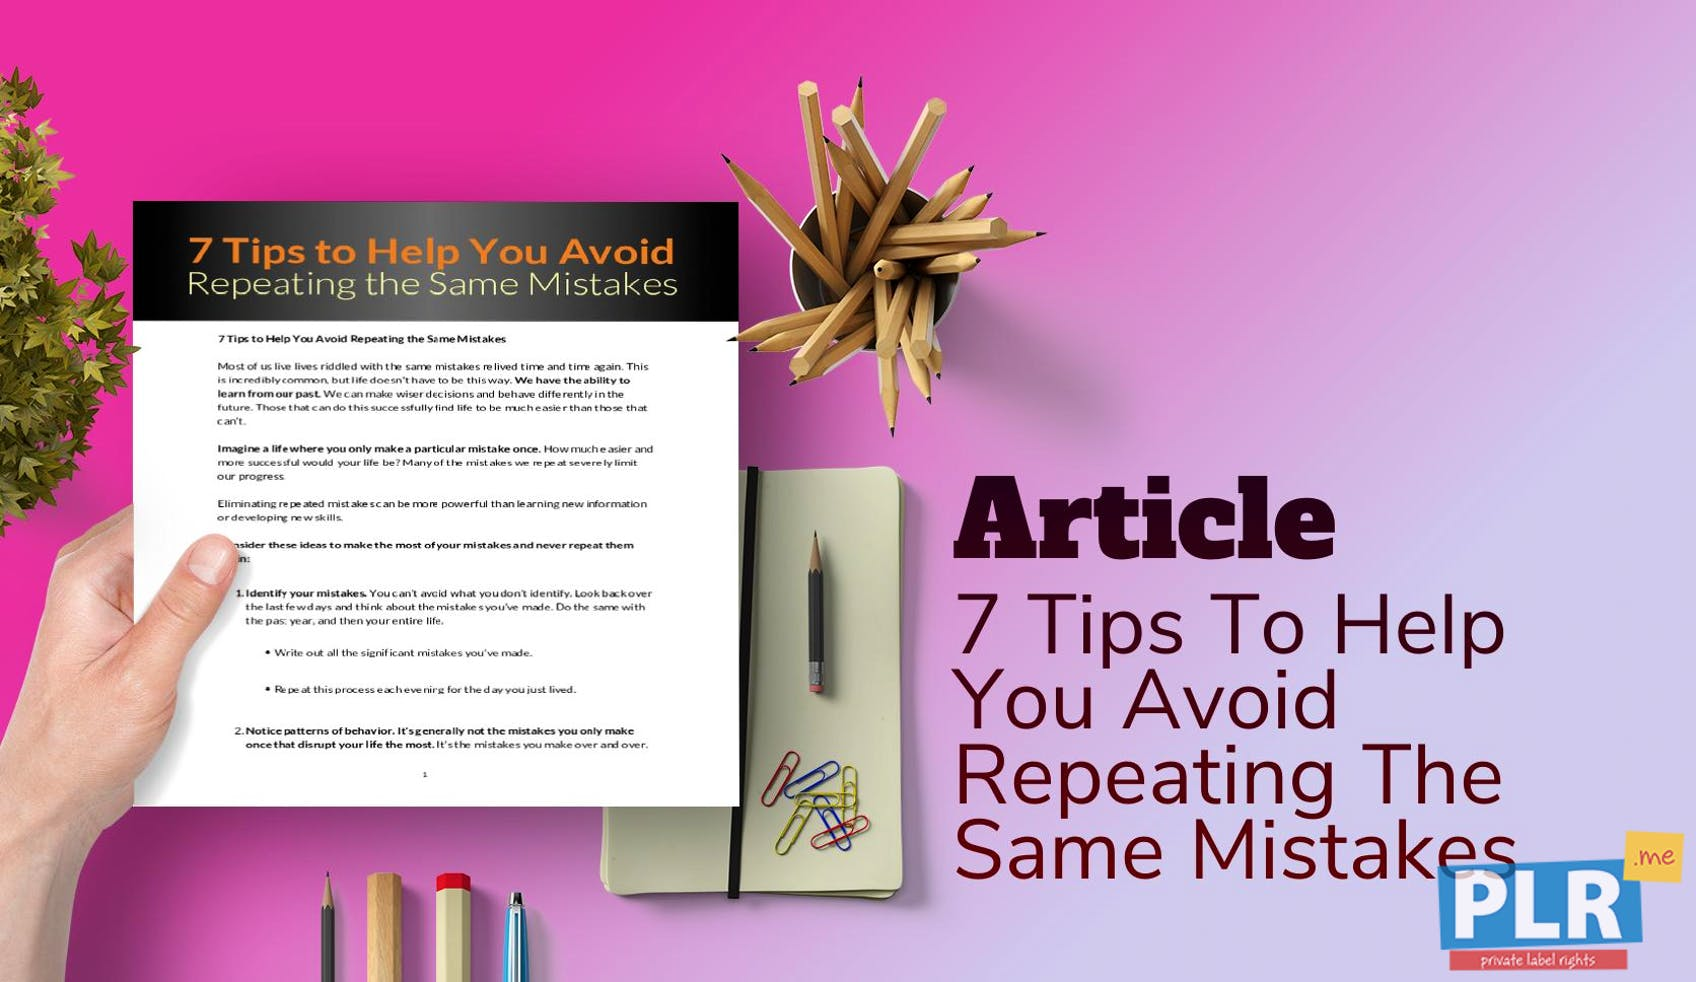 7 Tips To Help You Avoid Repeating The Same Mistakes